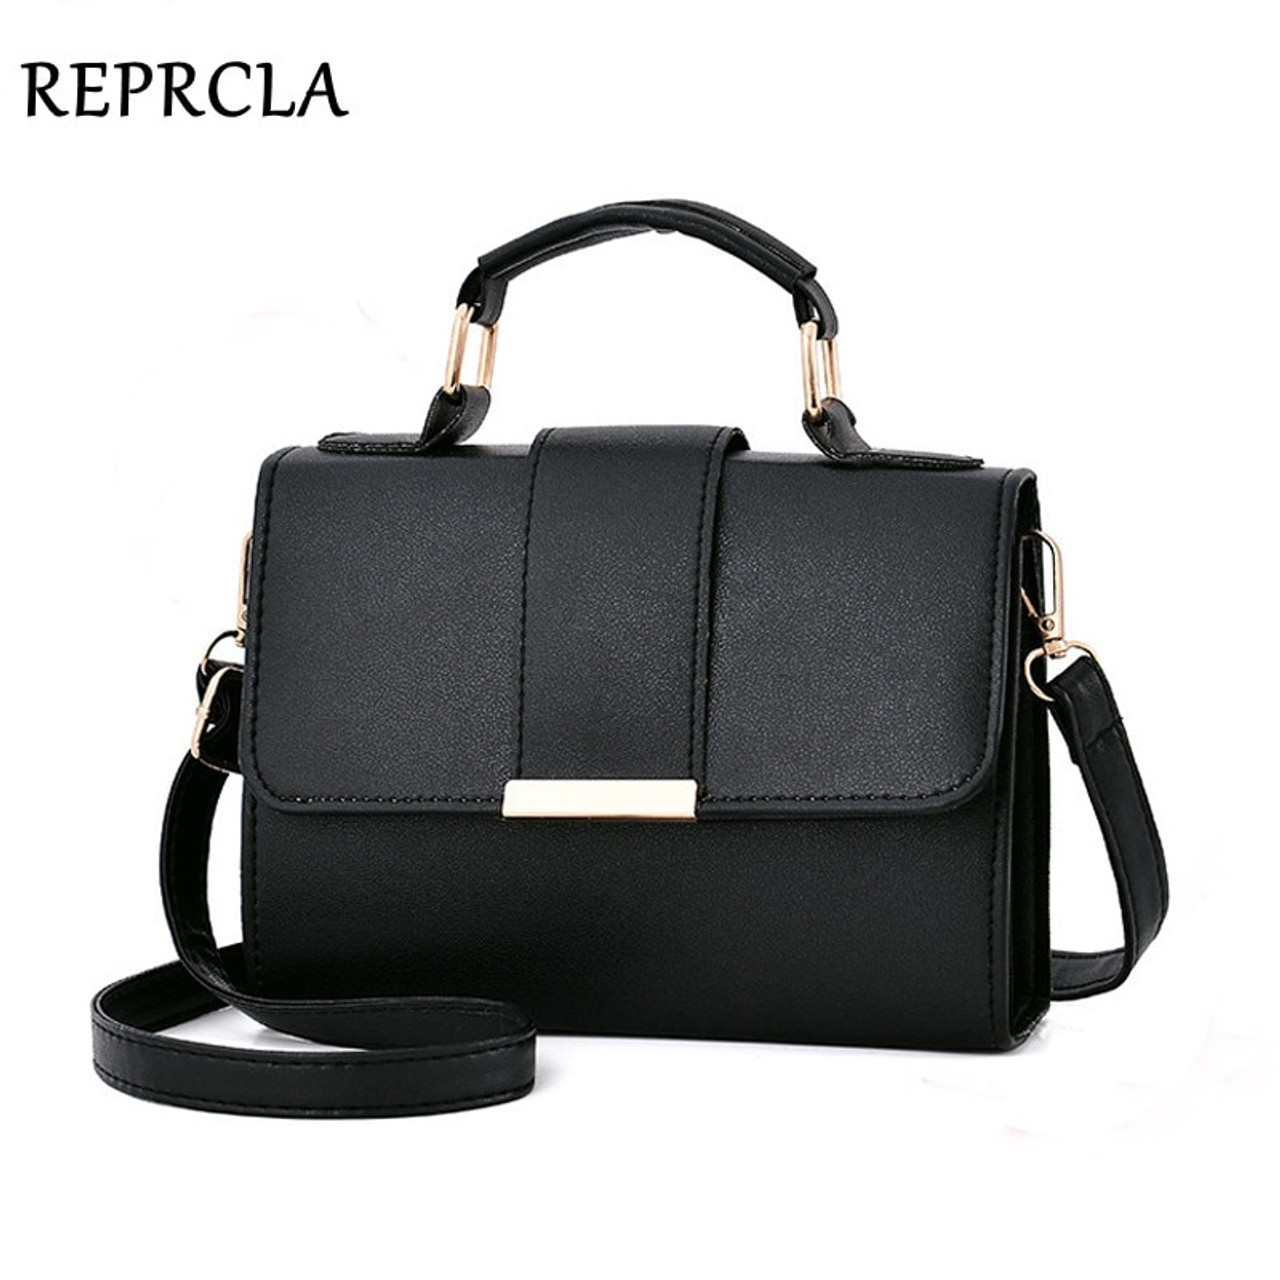 3eece79fd7 REPRCLA 2018 Summer Fashion Women Bag Leather Handbags PU Shoulder Bag  Small Flap Crossbody Bags for ...